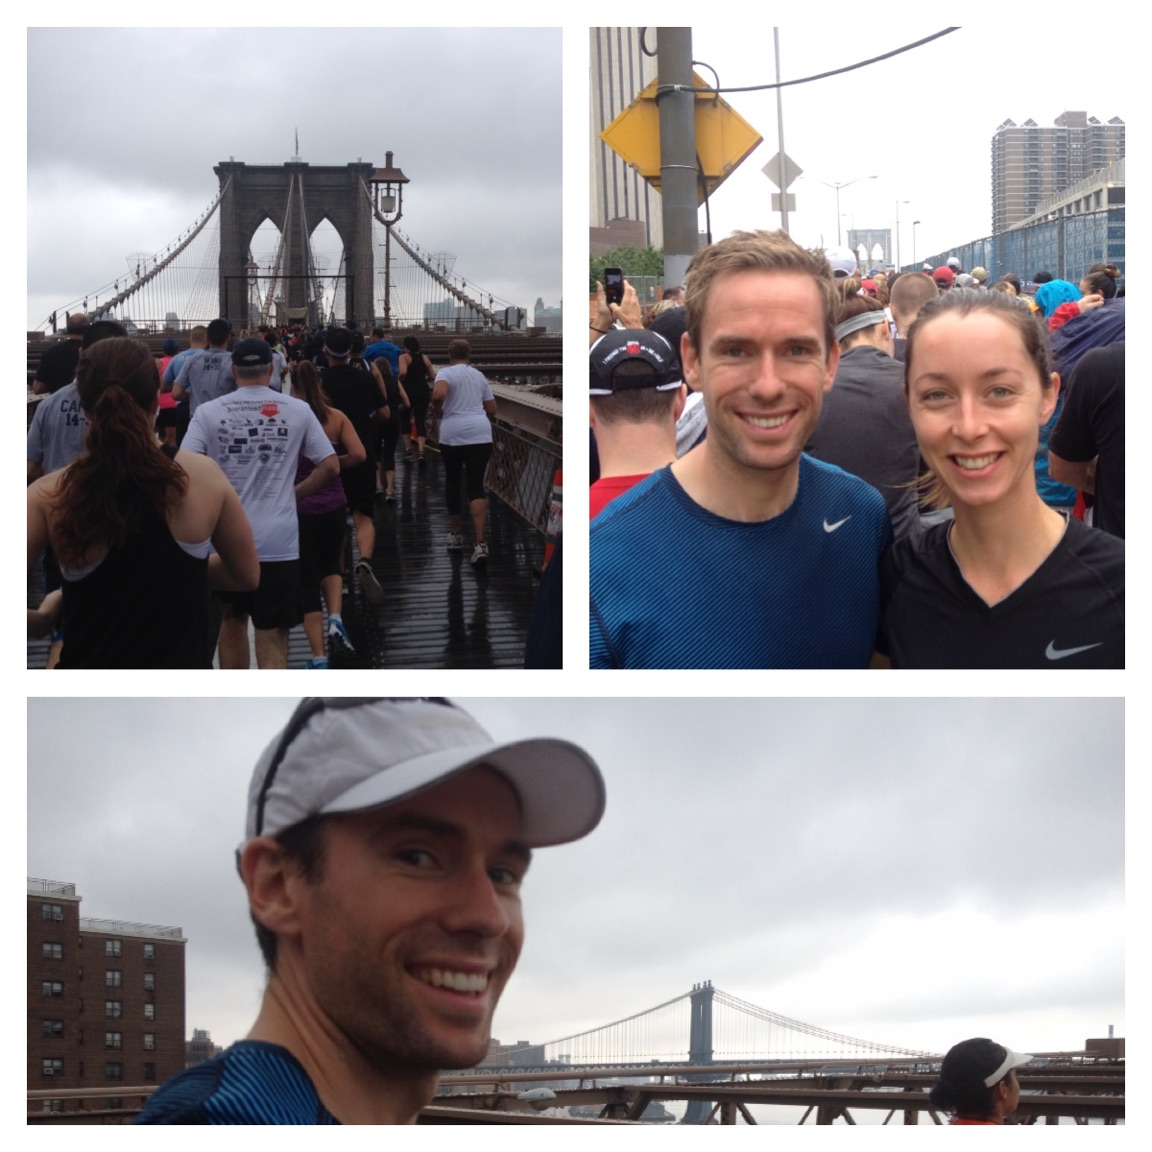 Johnny & Becca visiting new york - both awesome regulars at the group sessions in centennial park